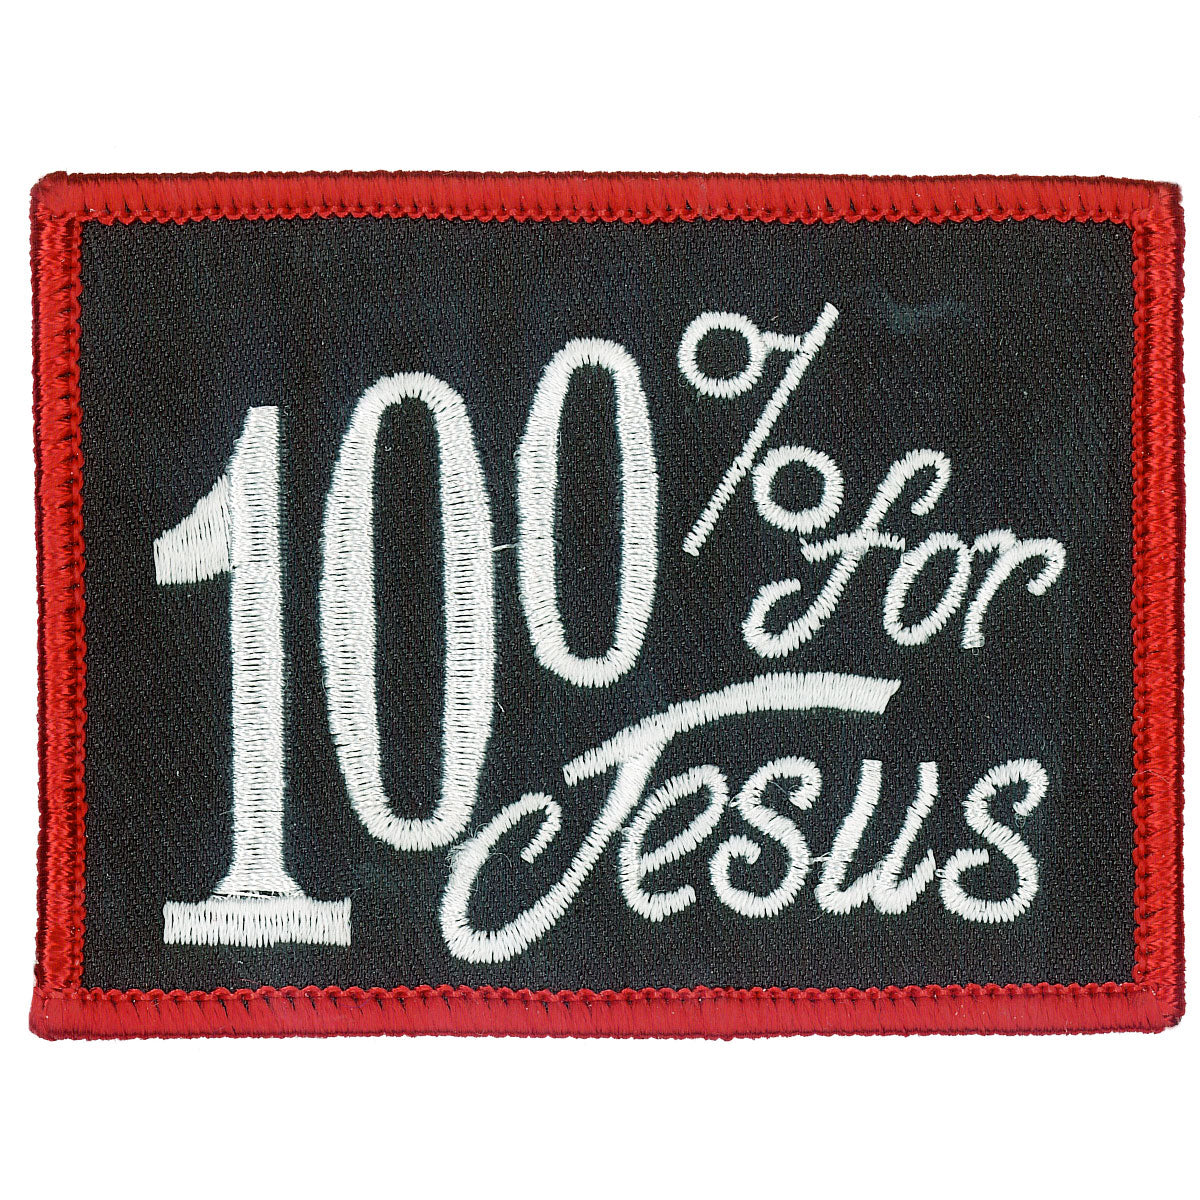 "Hot Leathers 100% For Jesus 3"" x 2"" Patch"